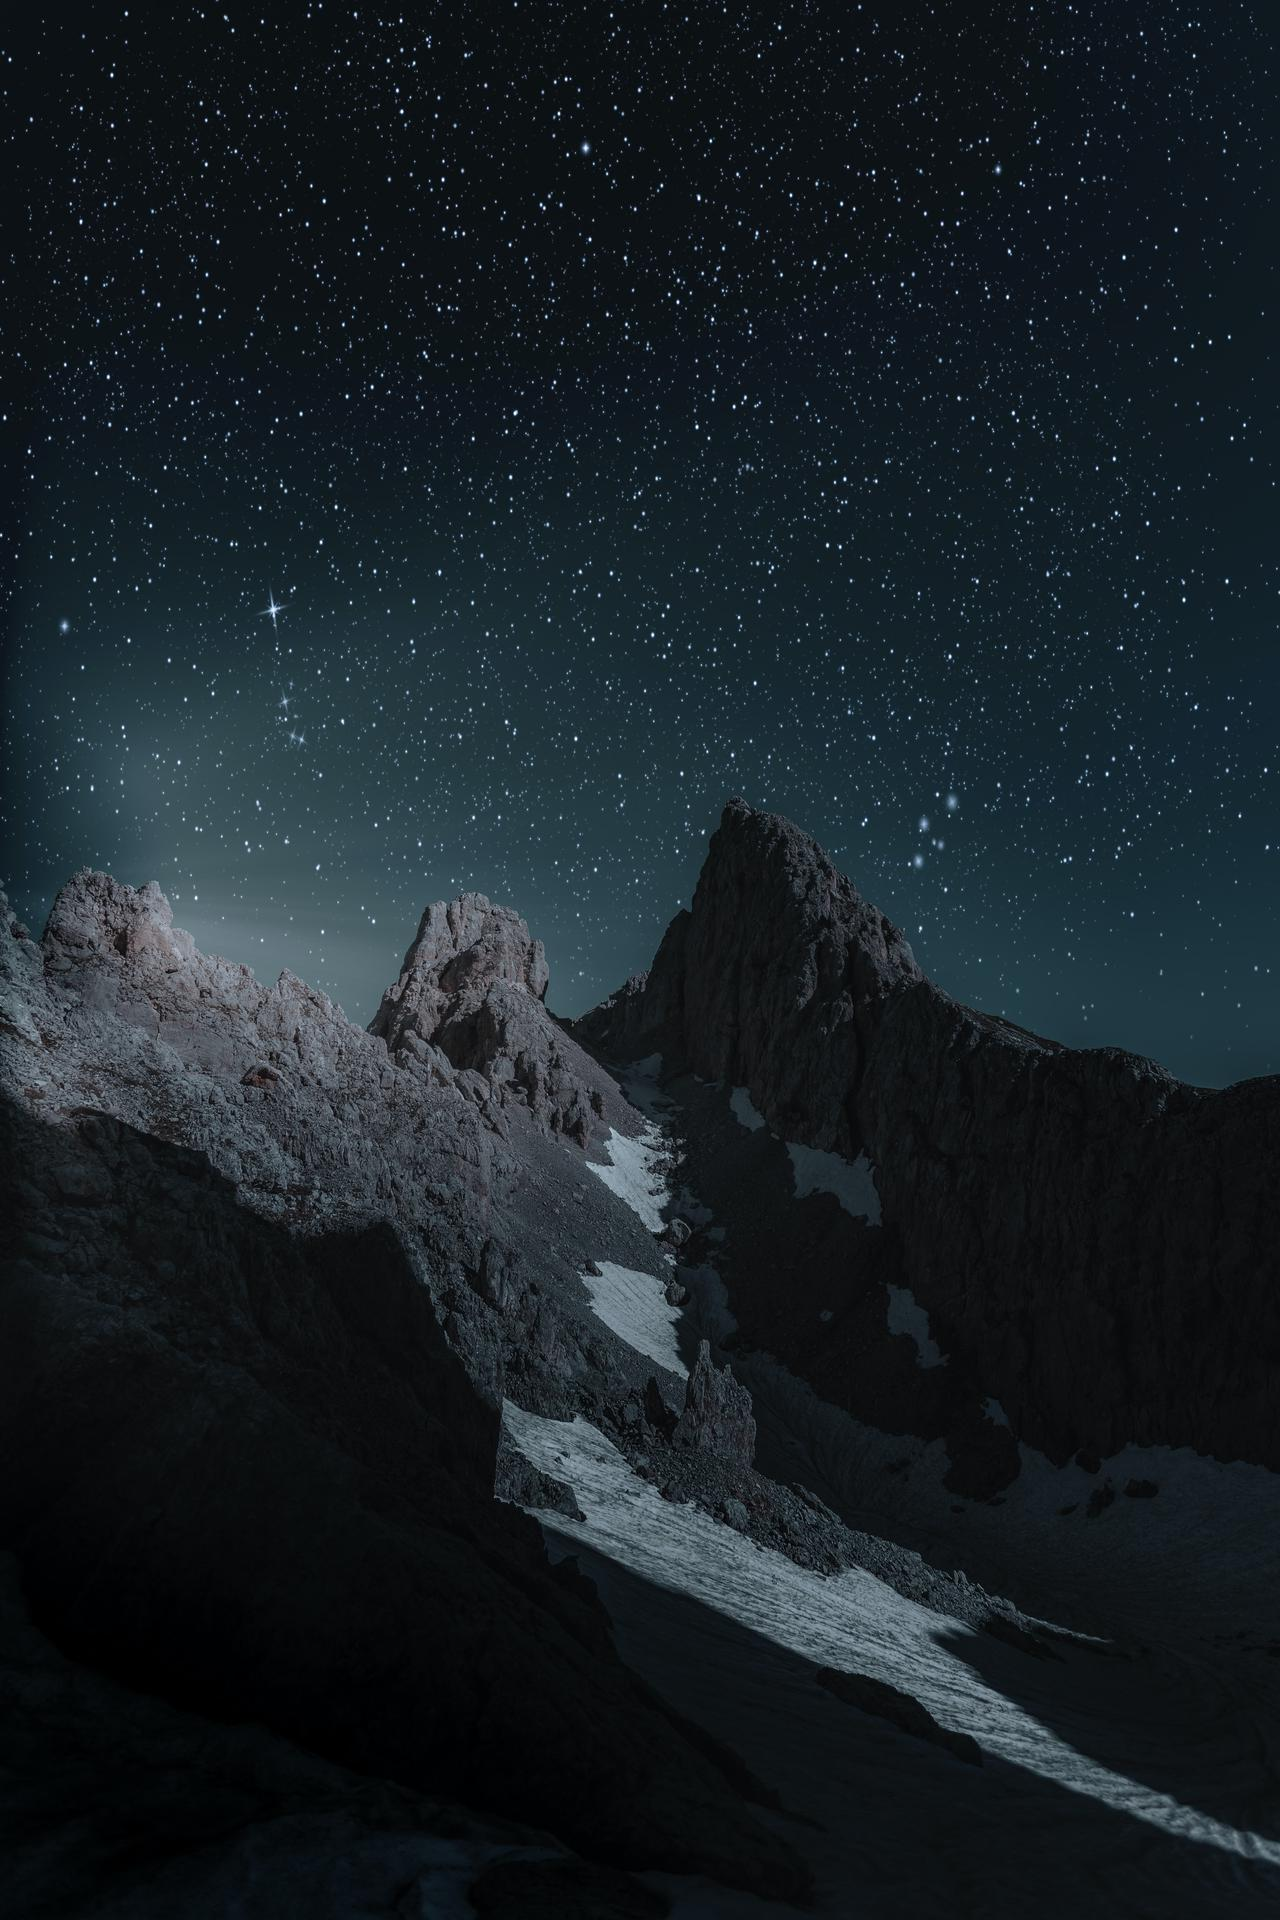 mountain against a starry night sky